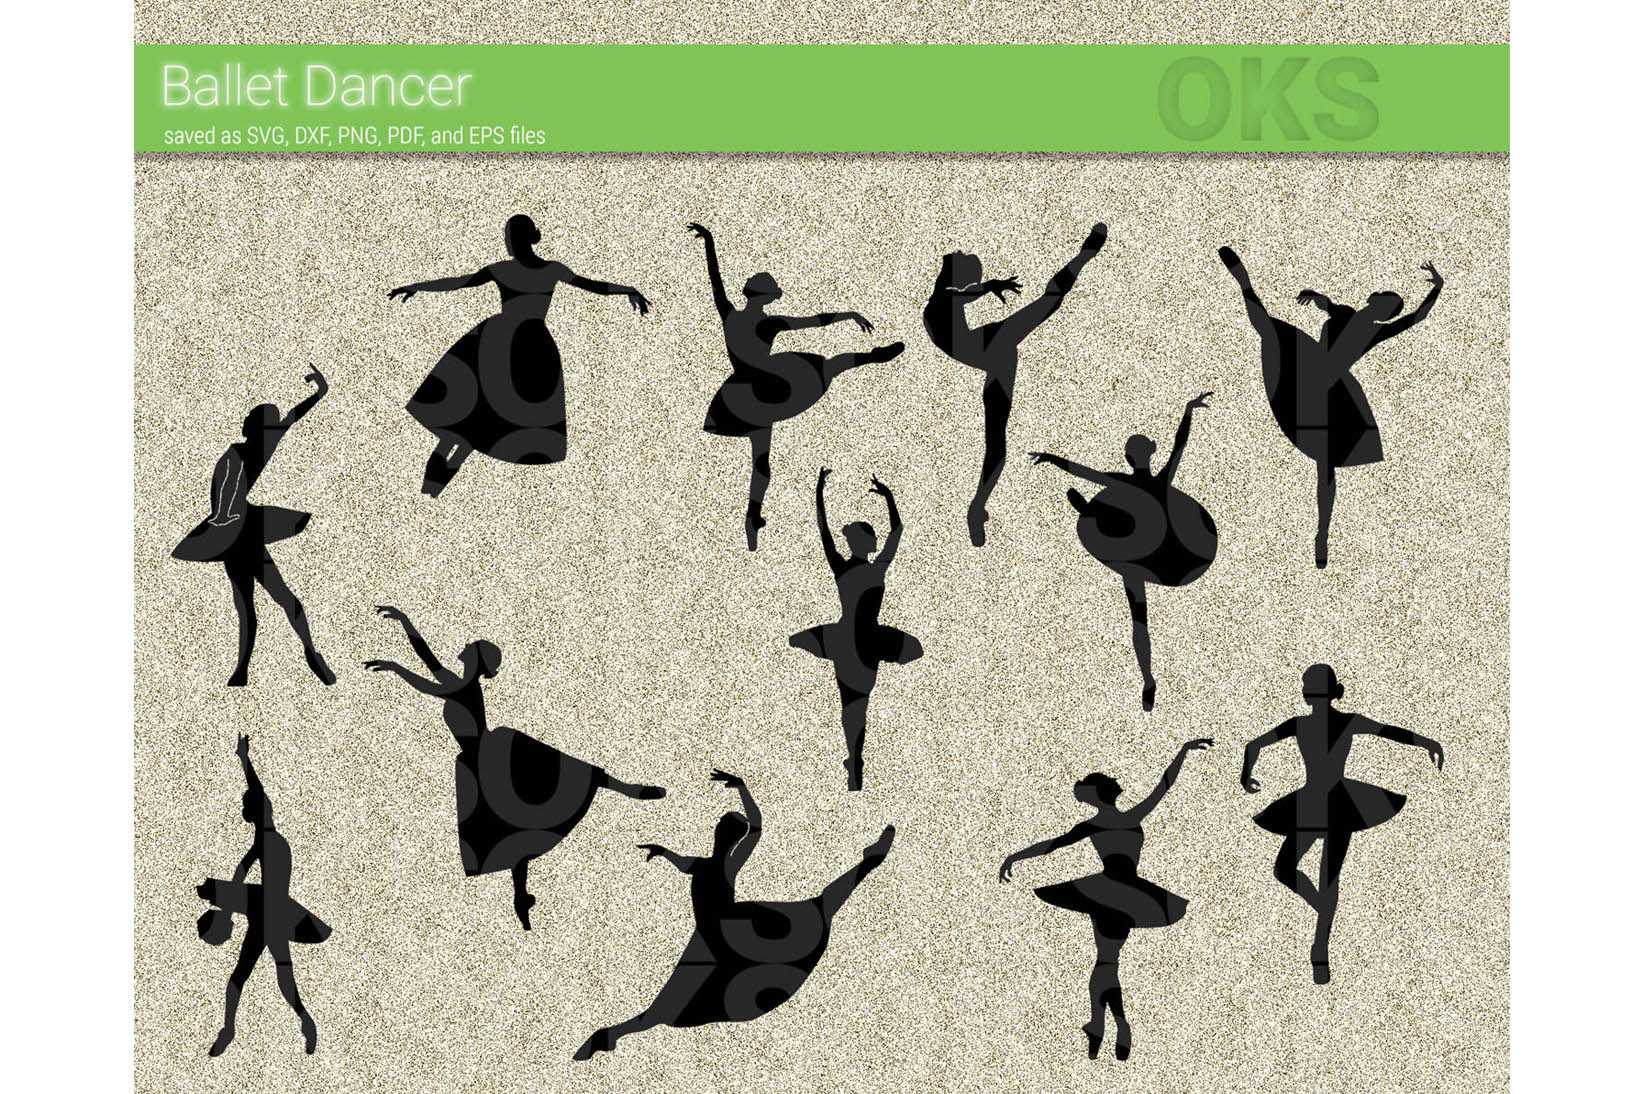 Download Free Ballet Dancer Svg Vector Clipart Graphic By Crafteroks for Cricut Explore, Silhouette and other cutting machines.